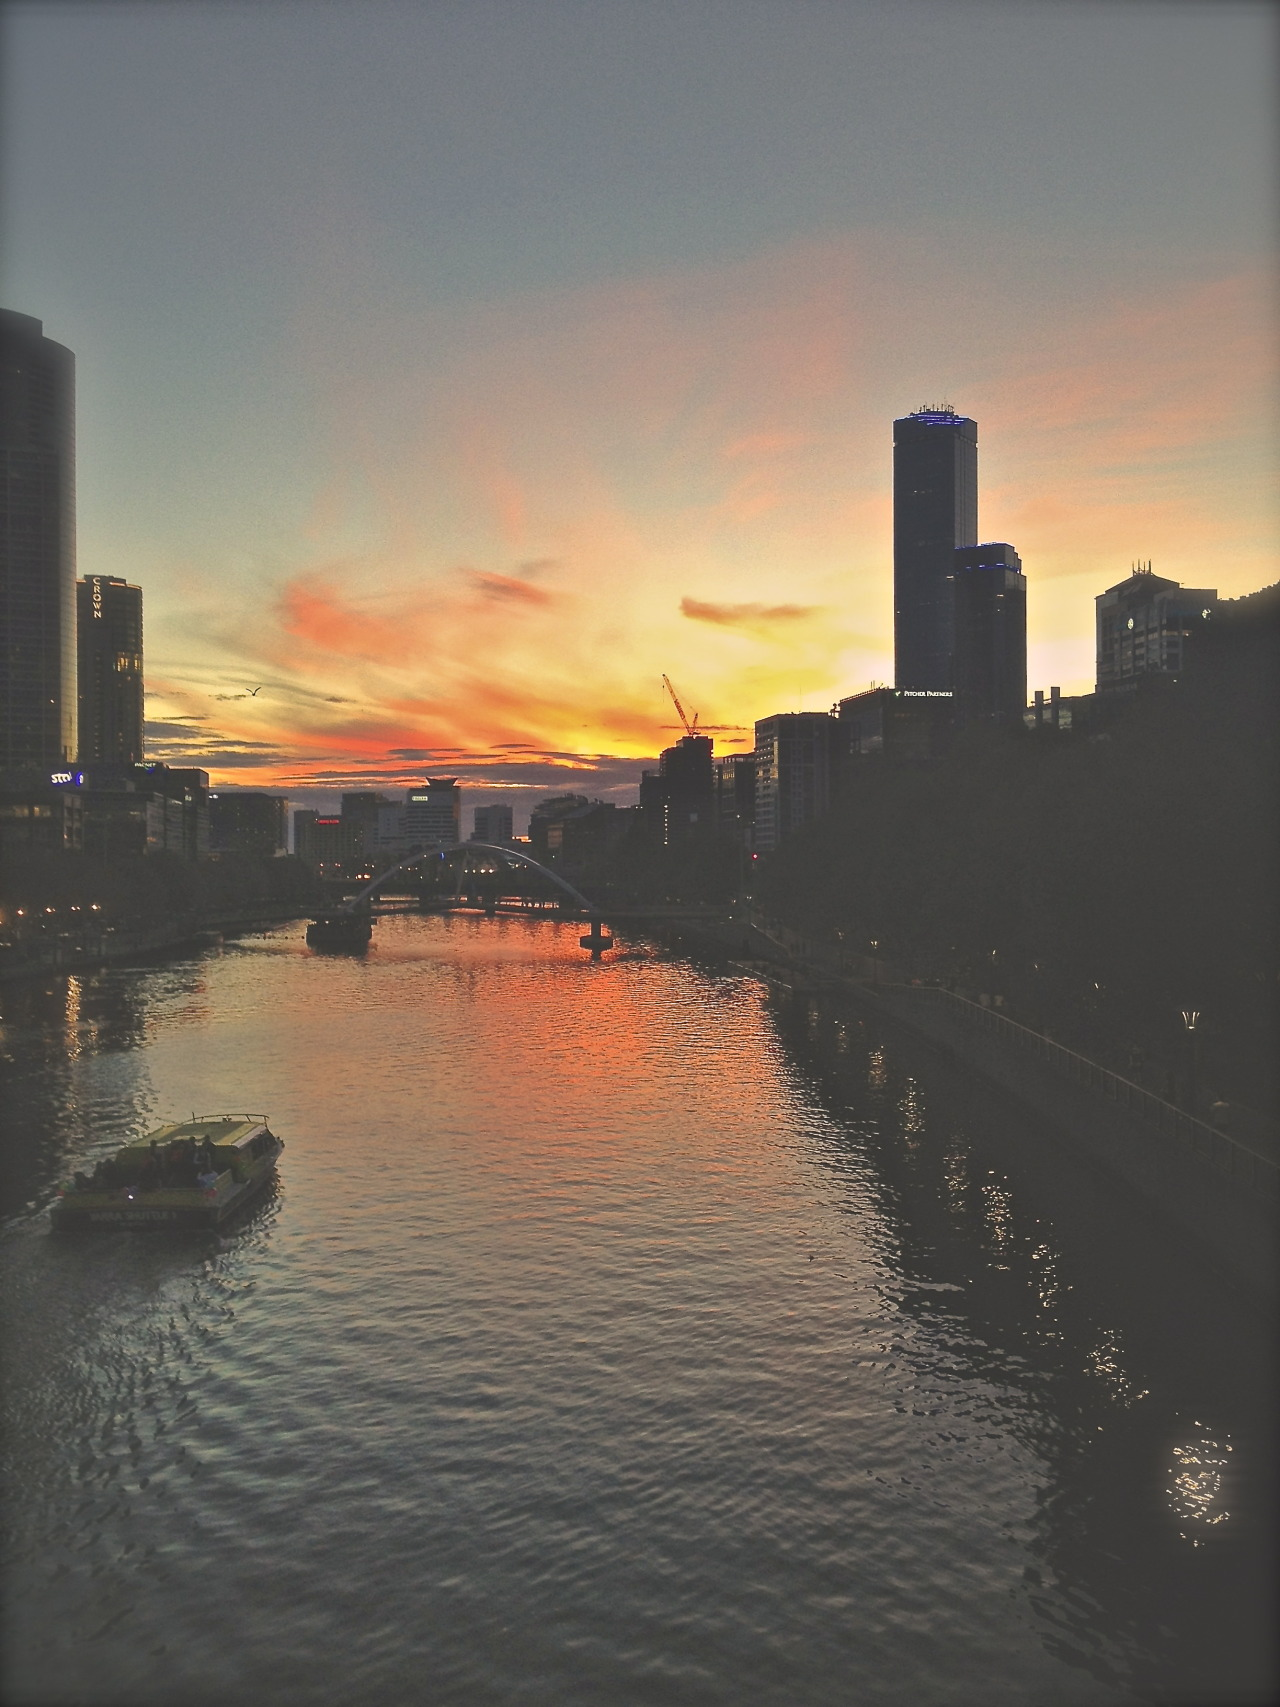 Sunset. From Flinders Bridge, Melbourne city.